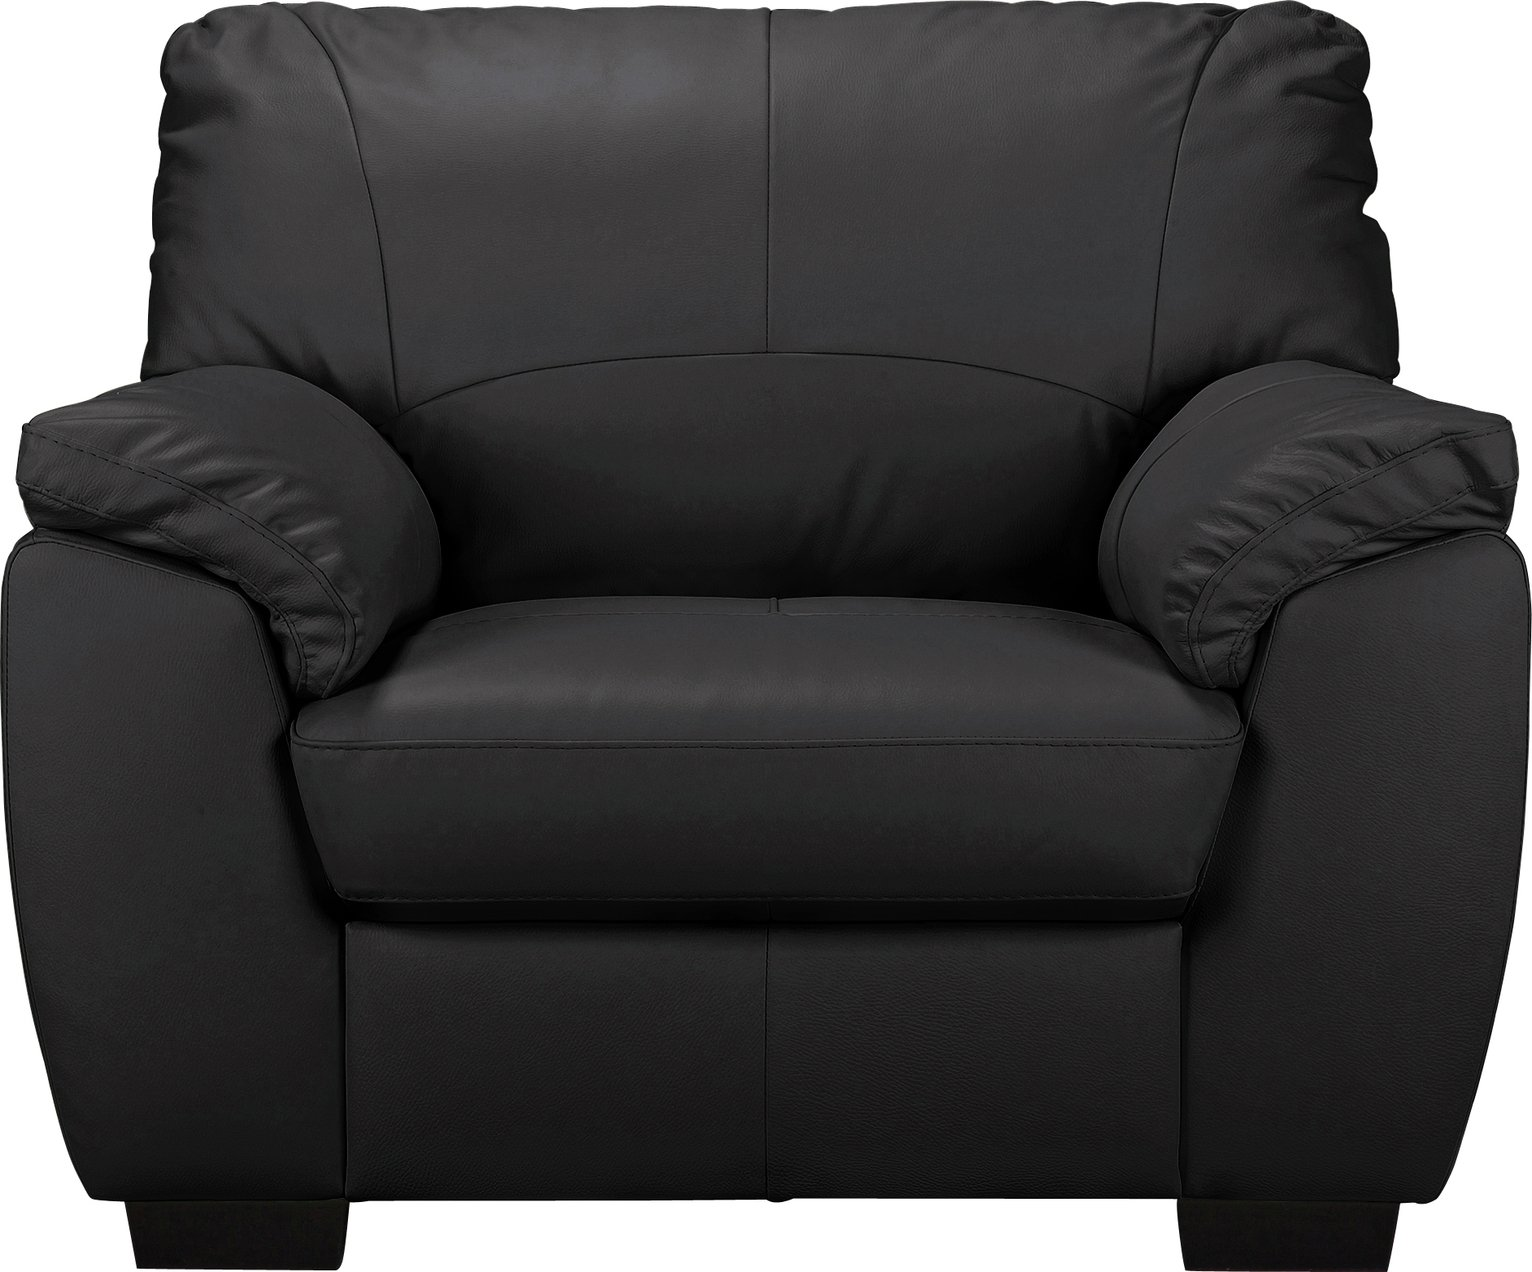 Etonnant Buy Argos Home Milano Leather Armchair   Black | Armchairs And Chairs |  Argos